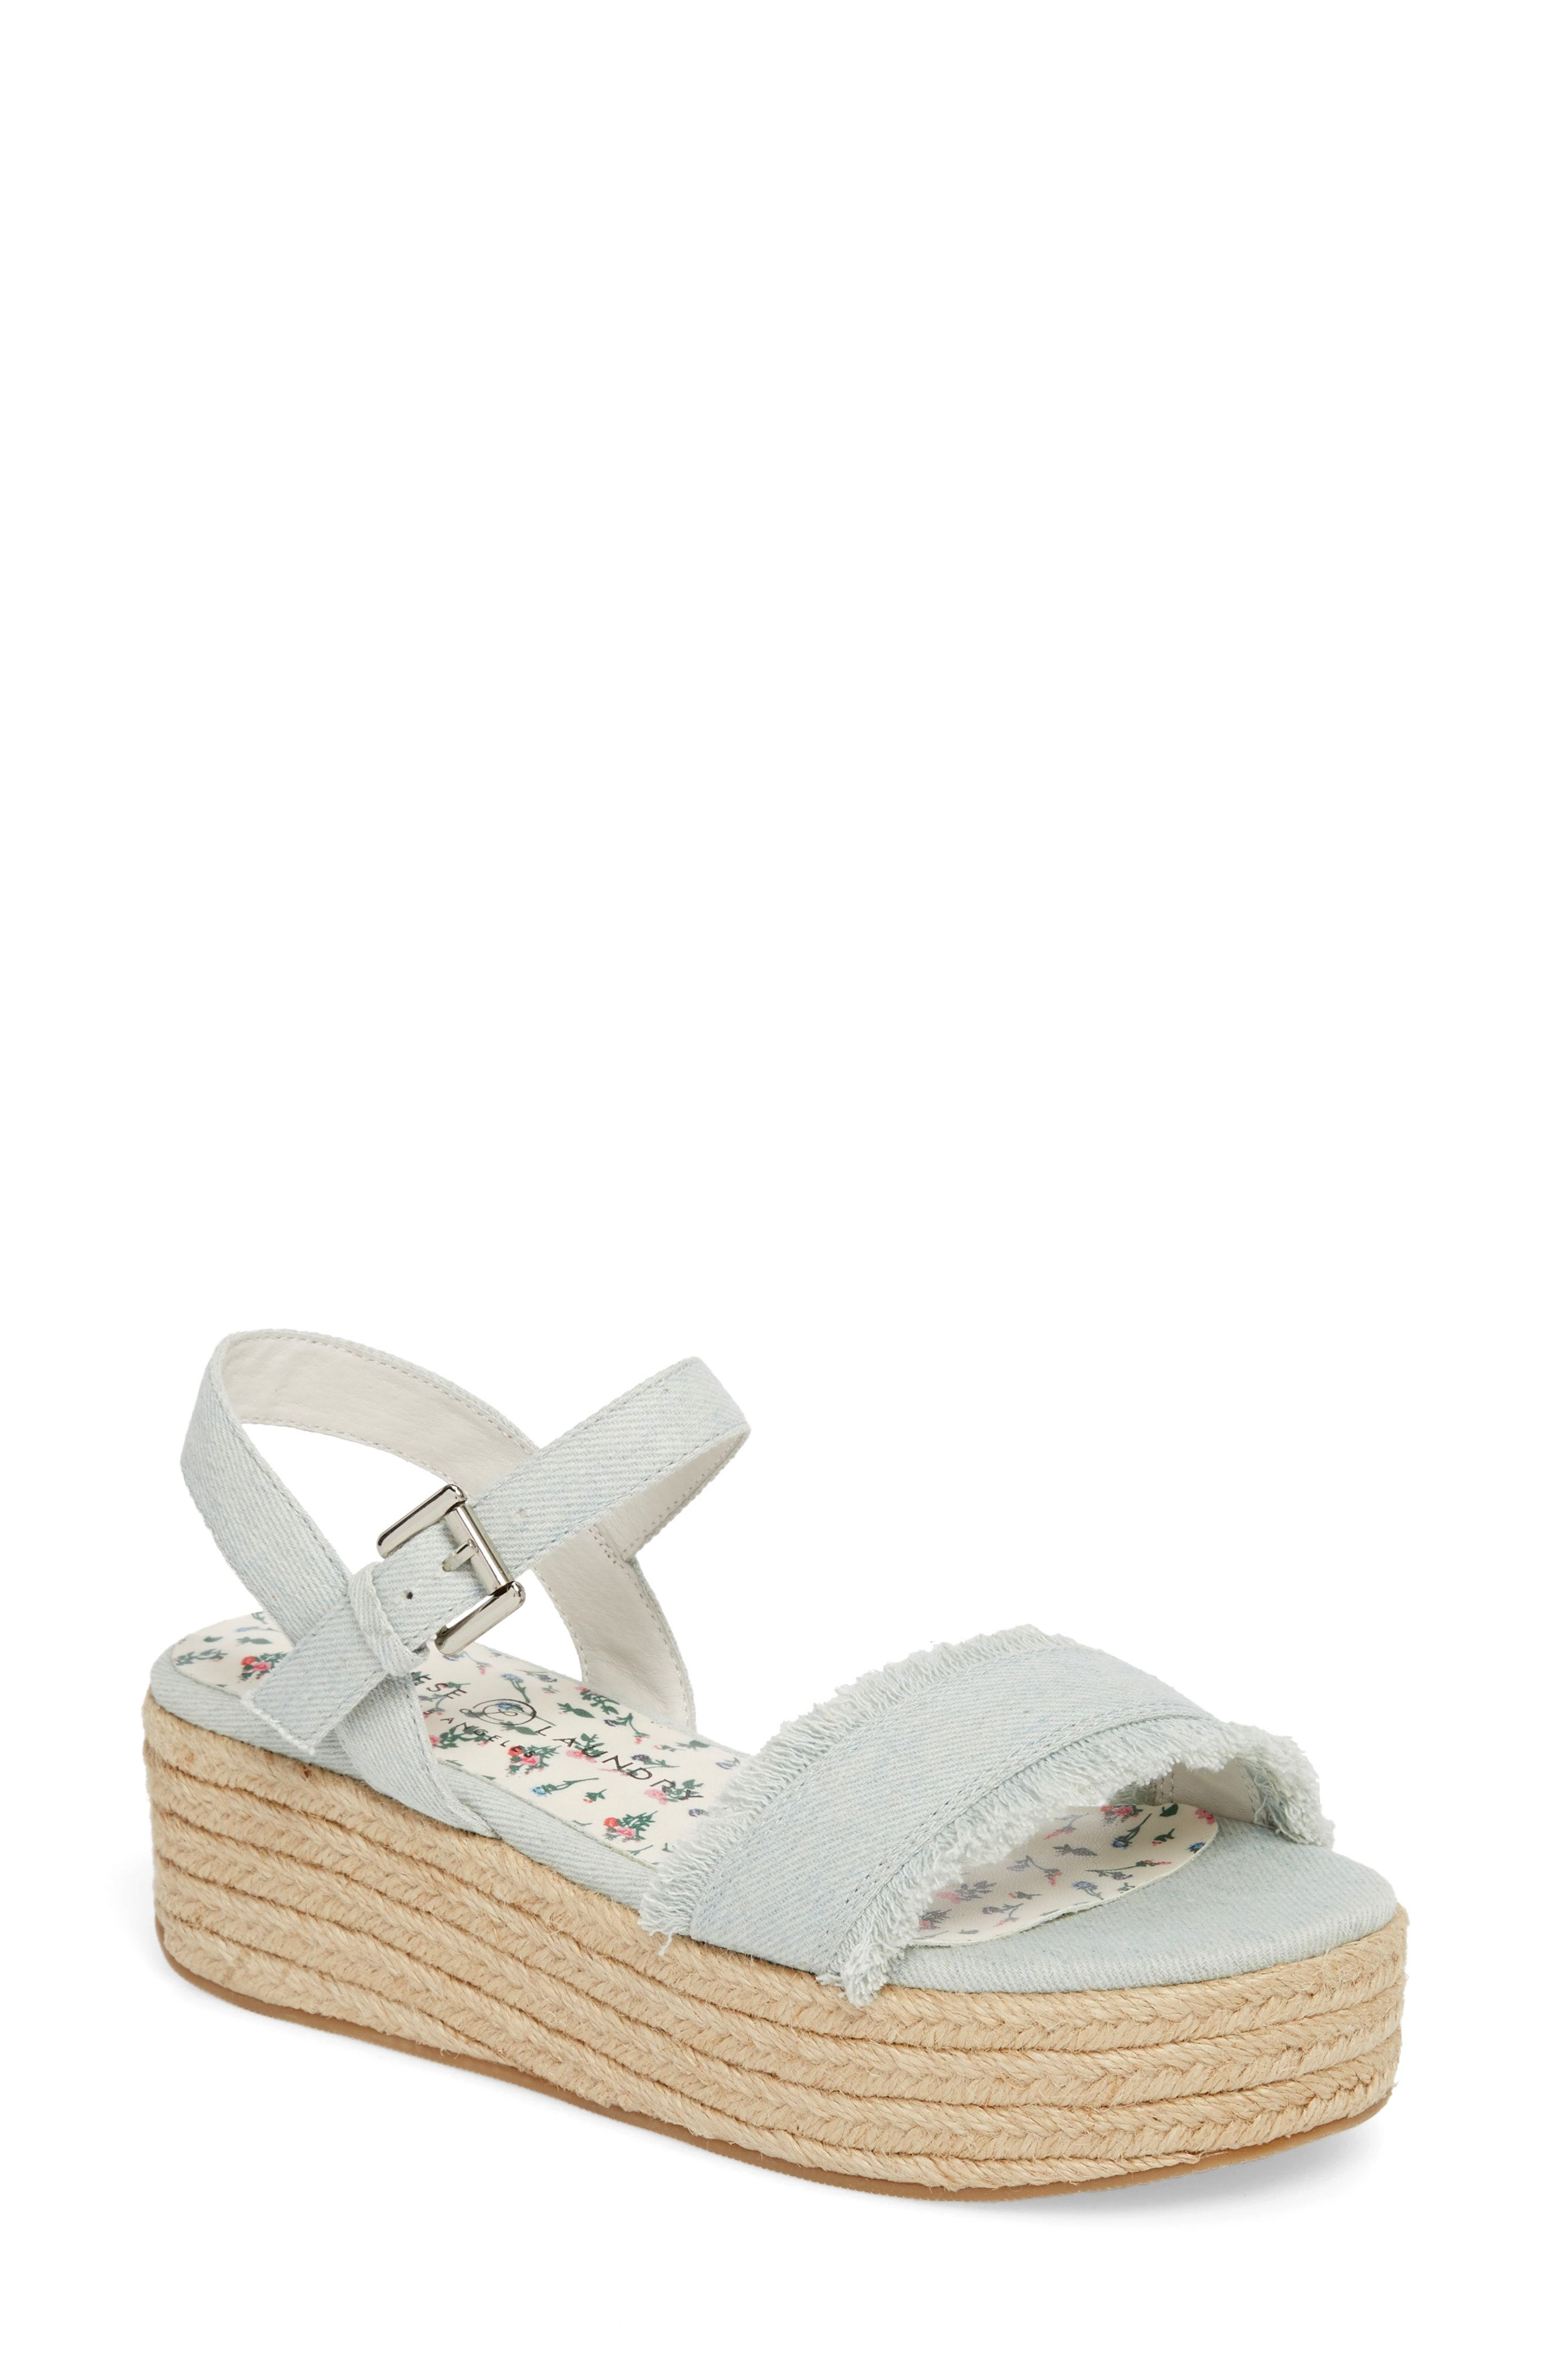 Chinese Laundry Zula Espadrille Sandal Available At Nordstrom